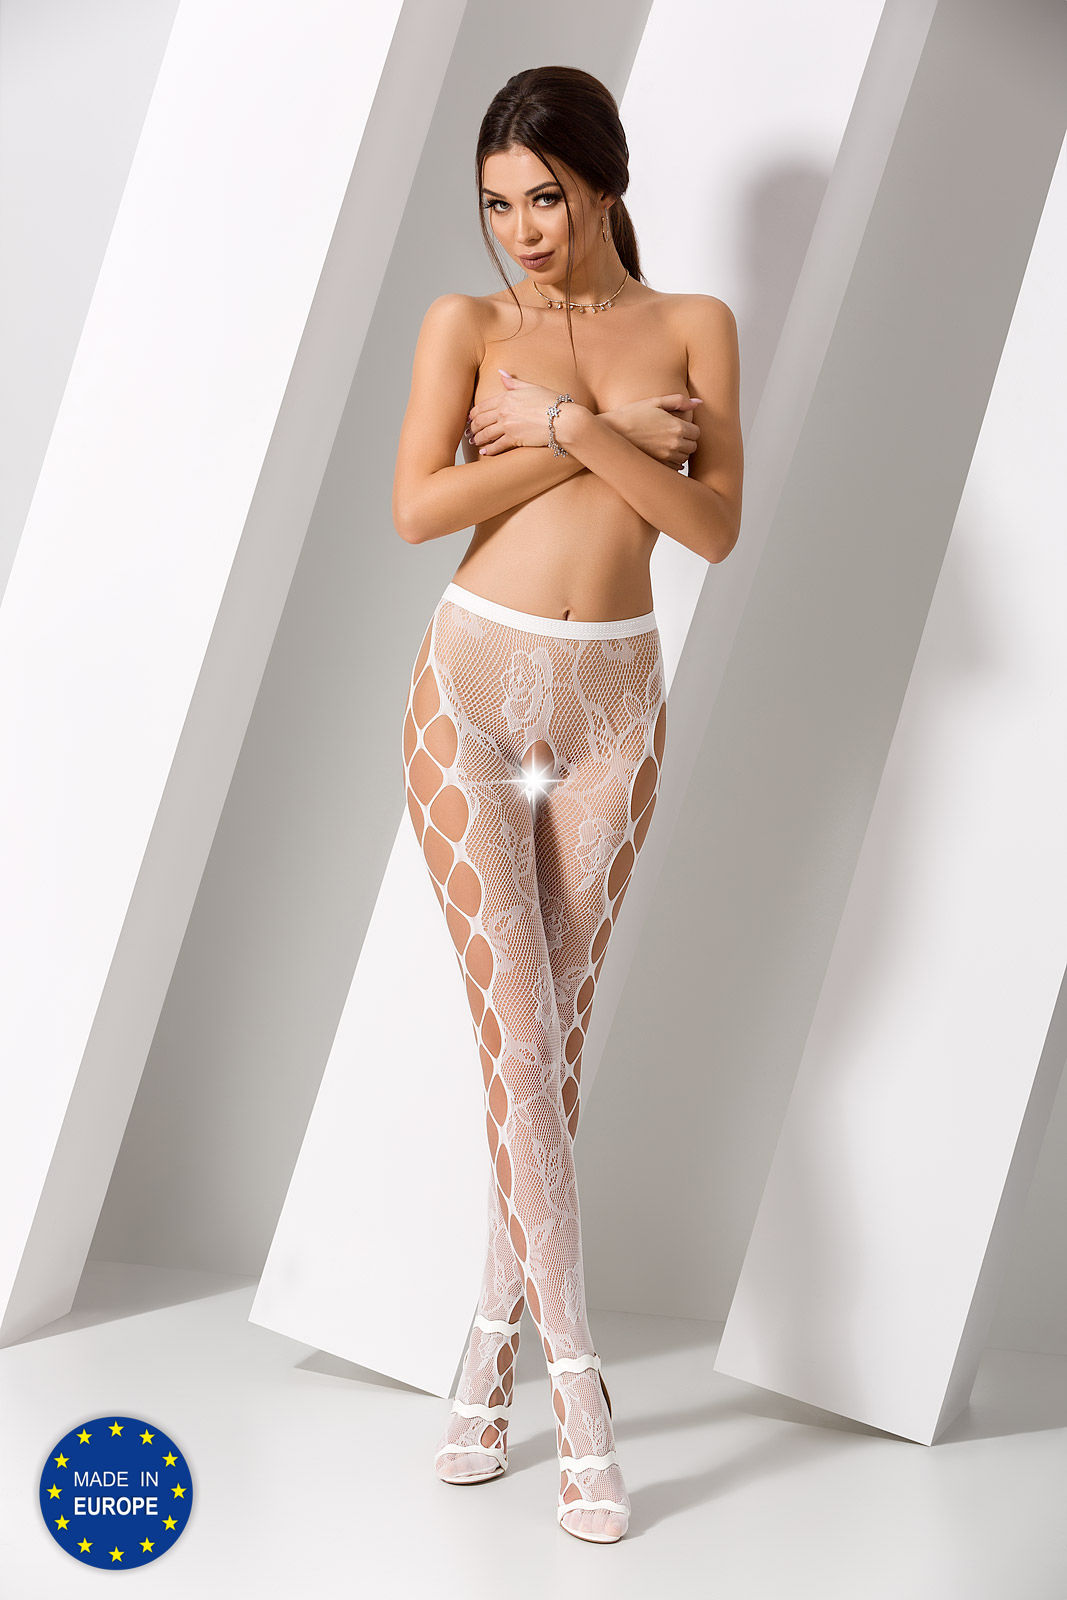 Passion S008 Tights White